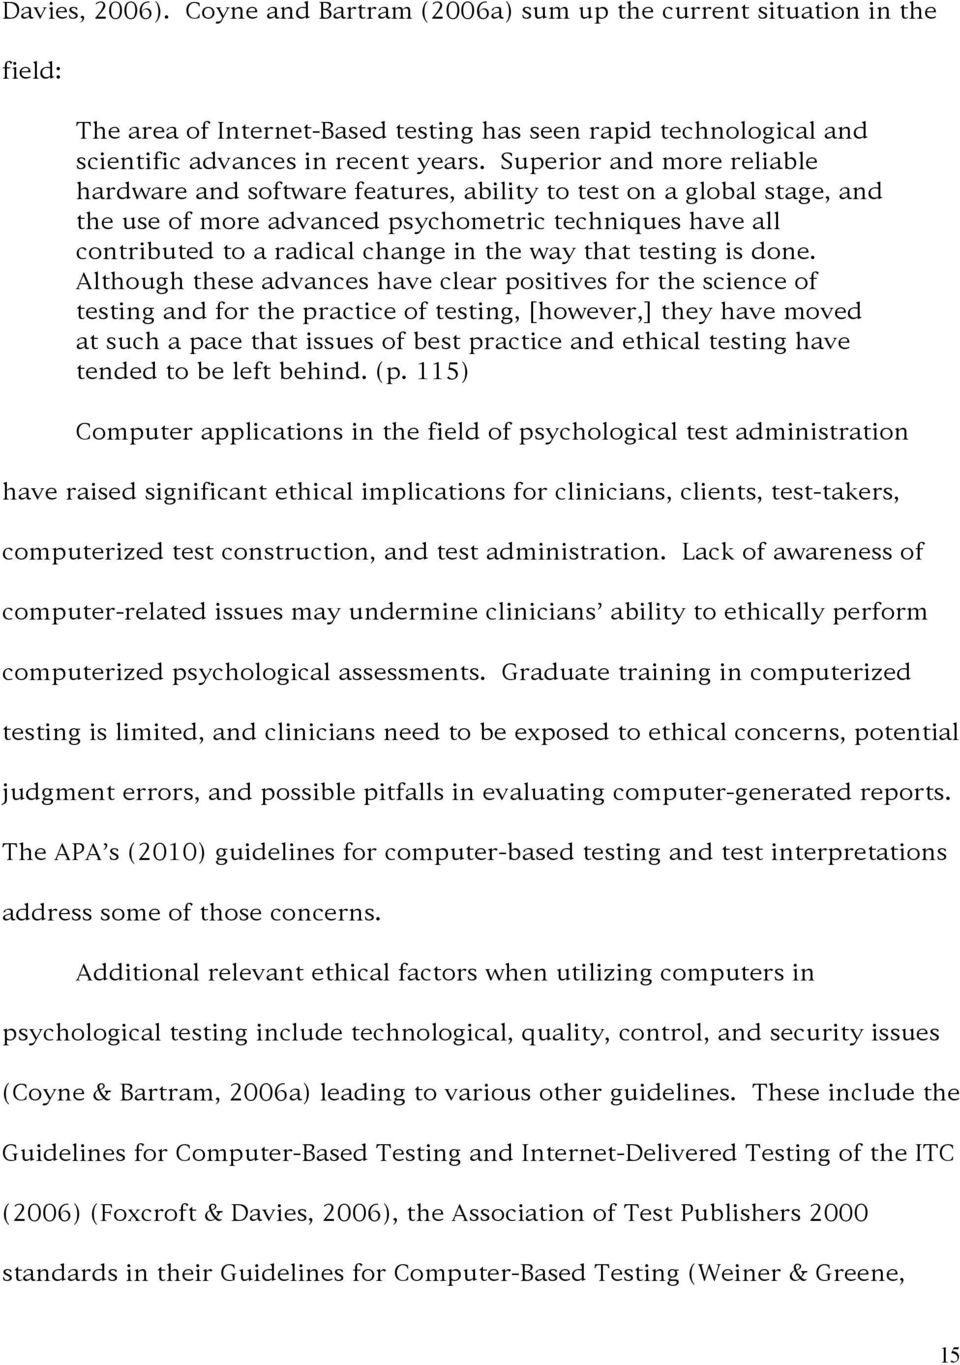 The Evolution of Psychological Testing: Embarking on the Age